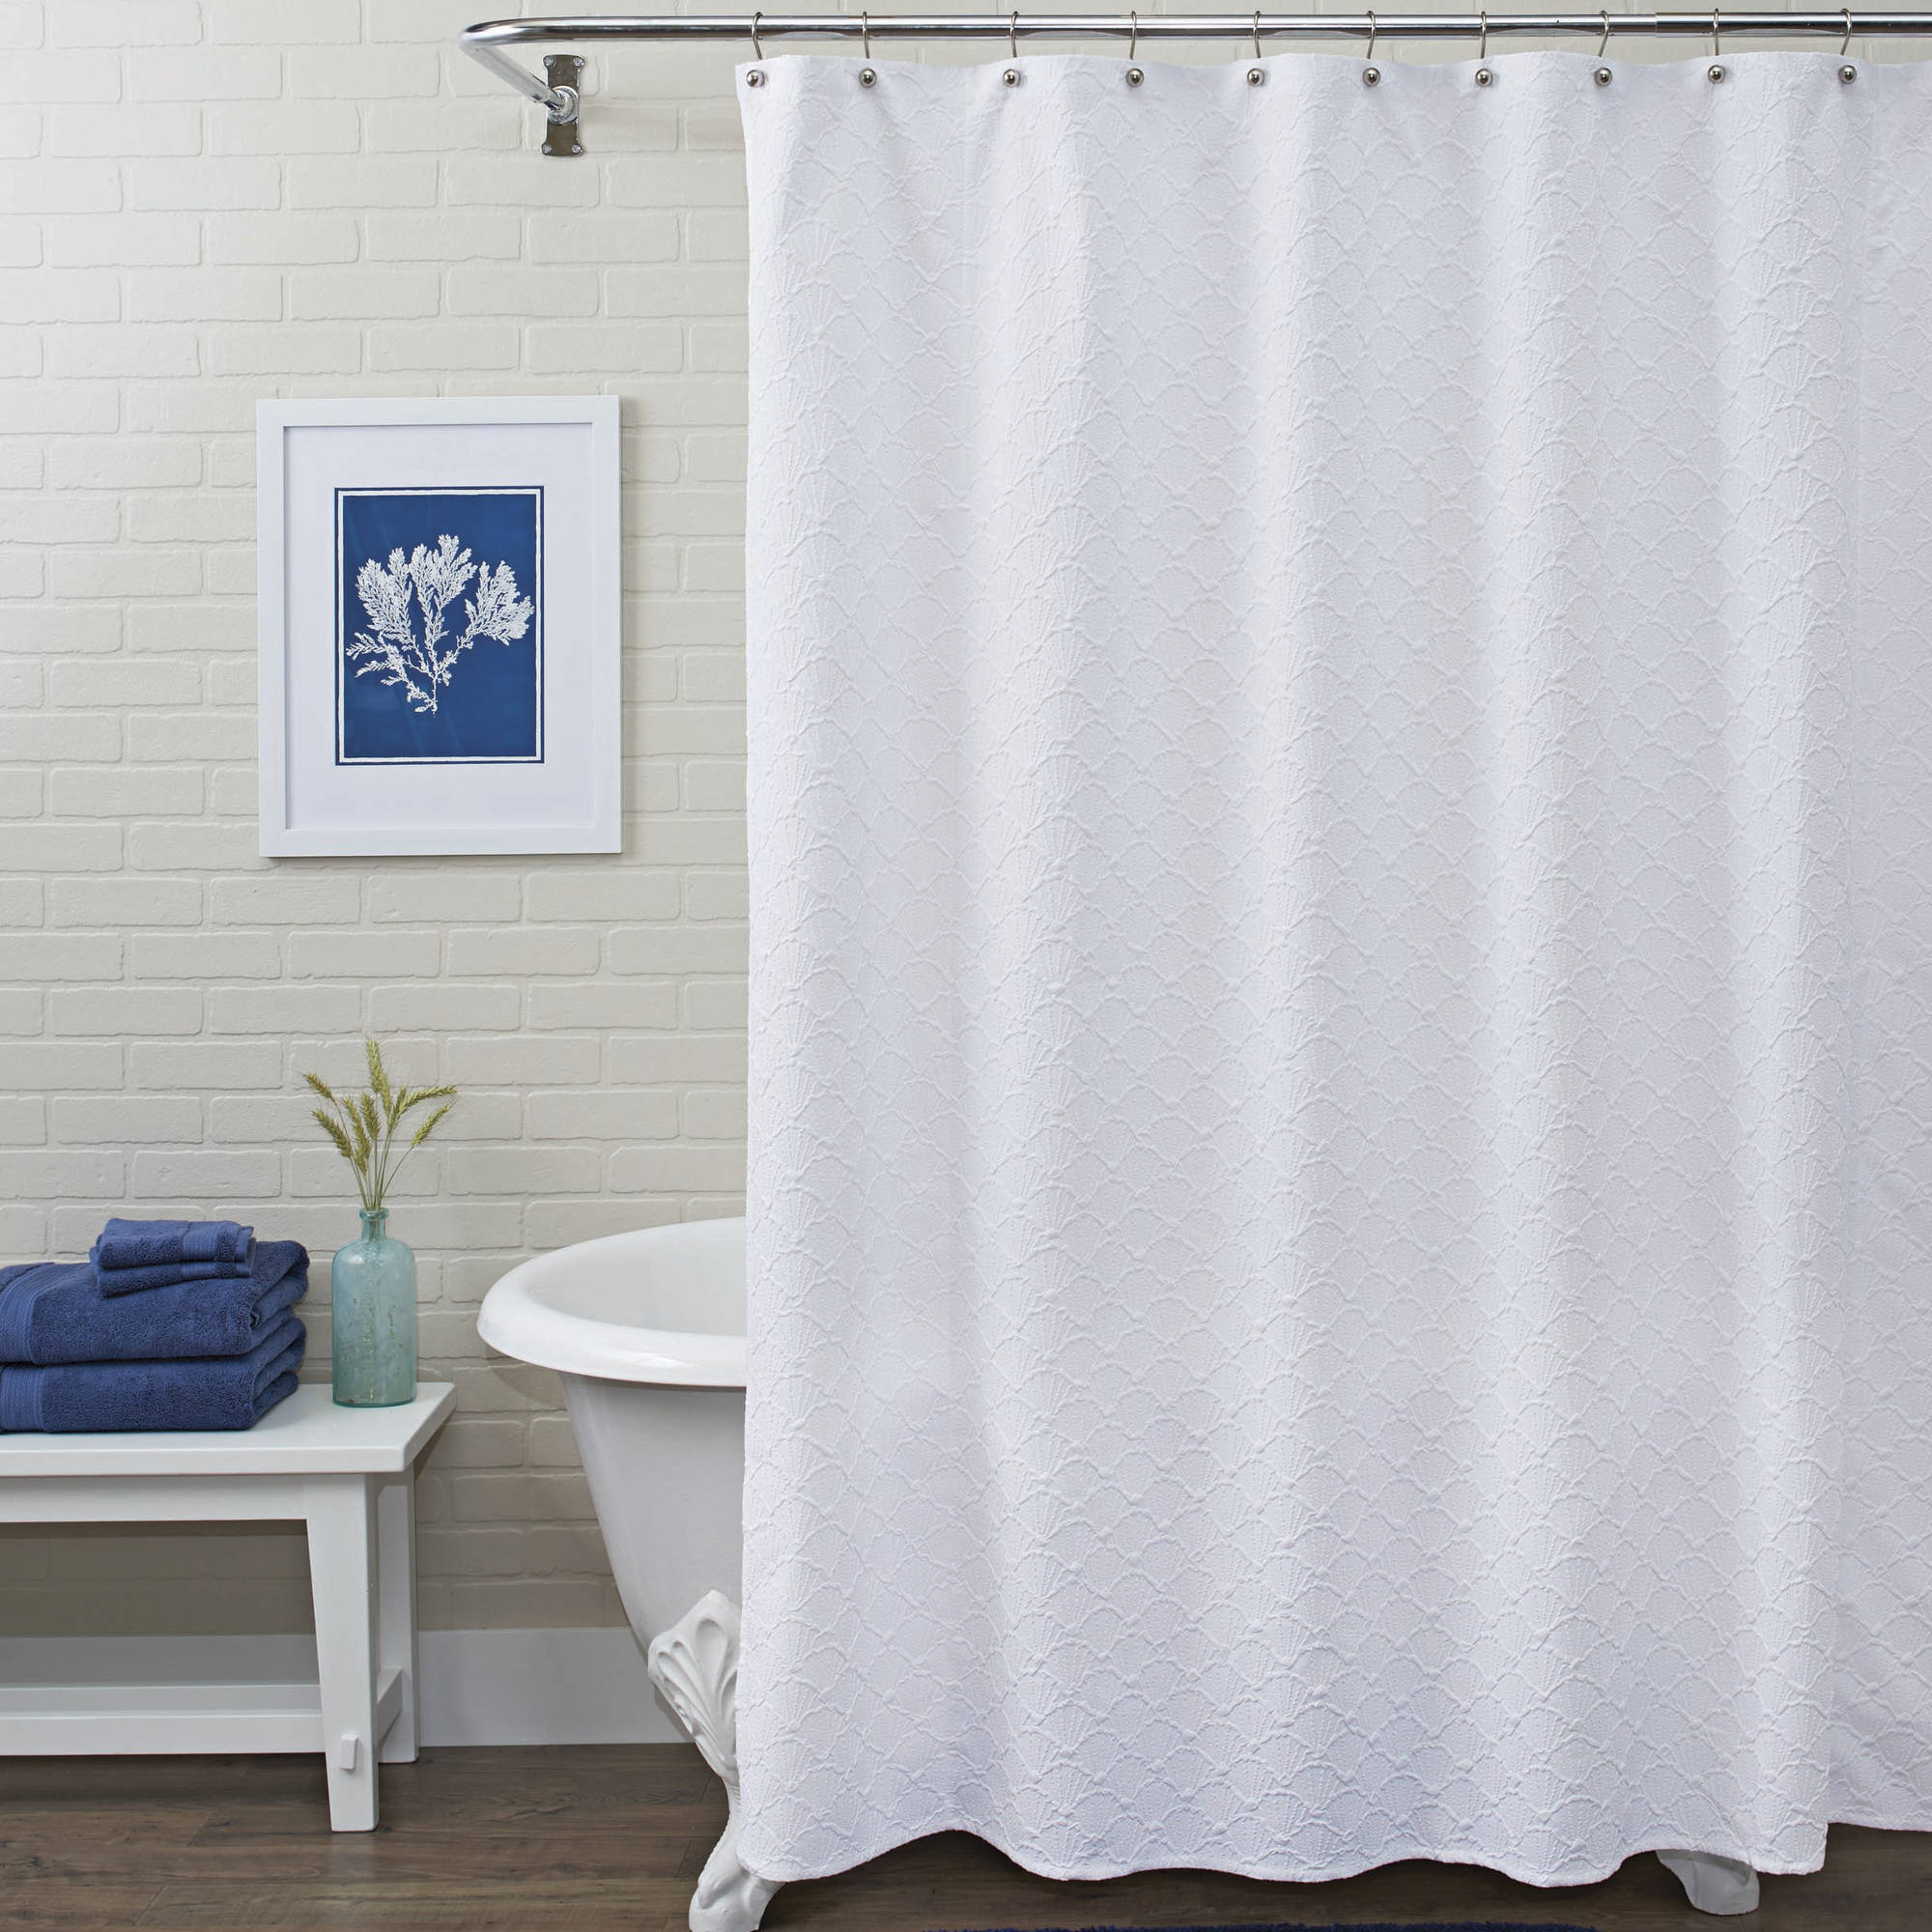 Better Homes and Gardens Shower Curtain, White Shells